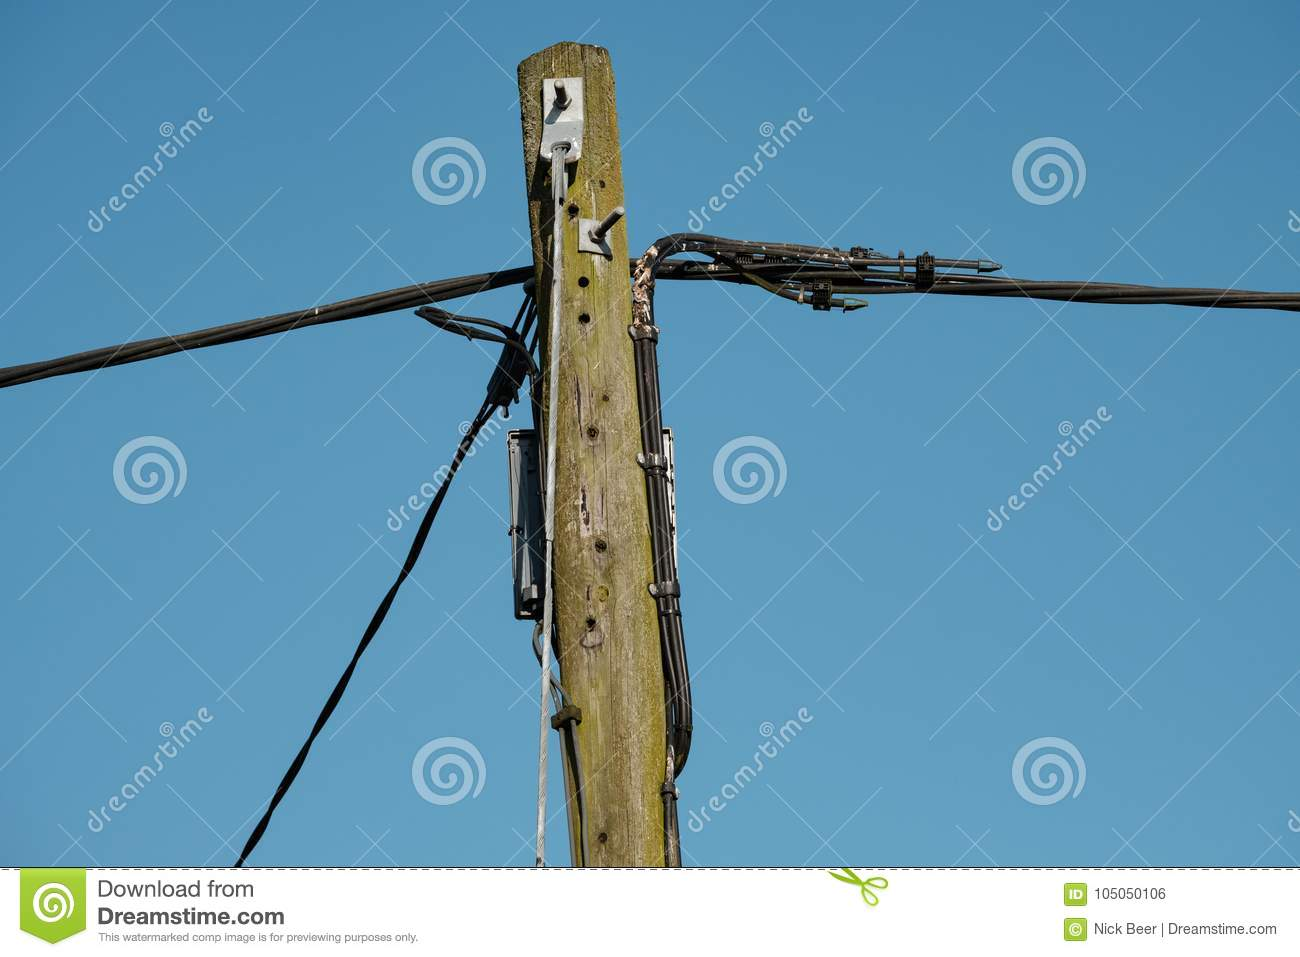 Generic, High Voltage And Telephone Cable System Seen Supported By A ...